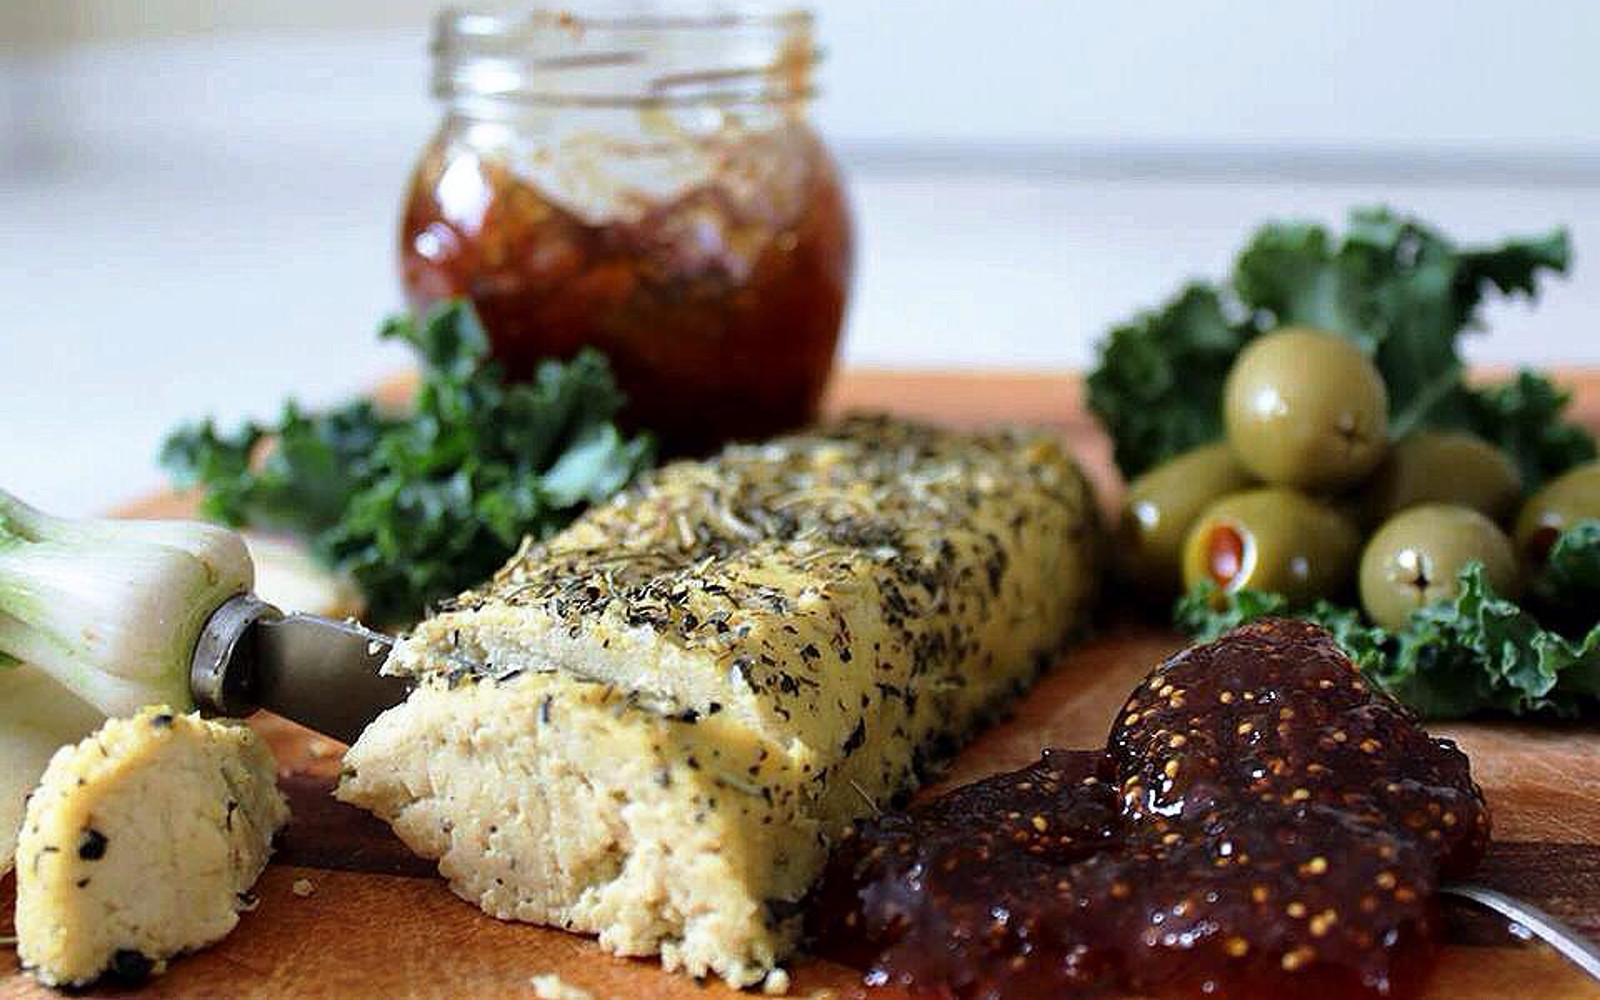 Decadent Baked Herb-Crusted Cashew Almond Cheese